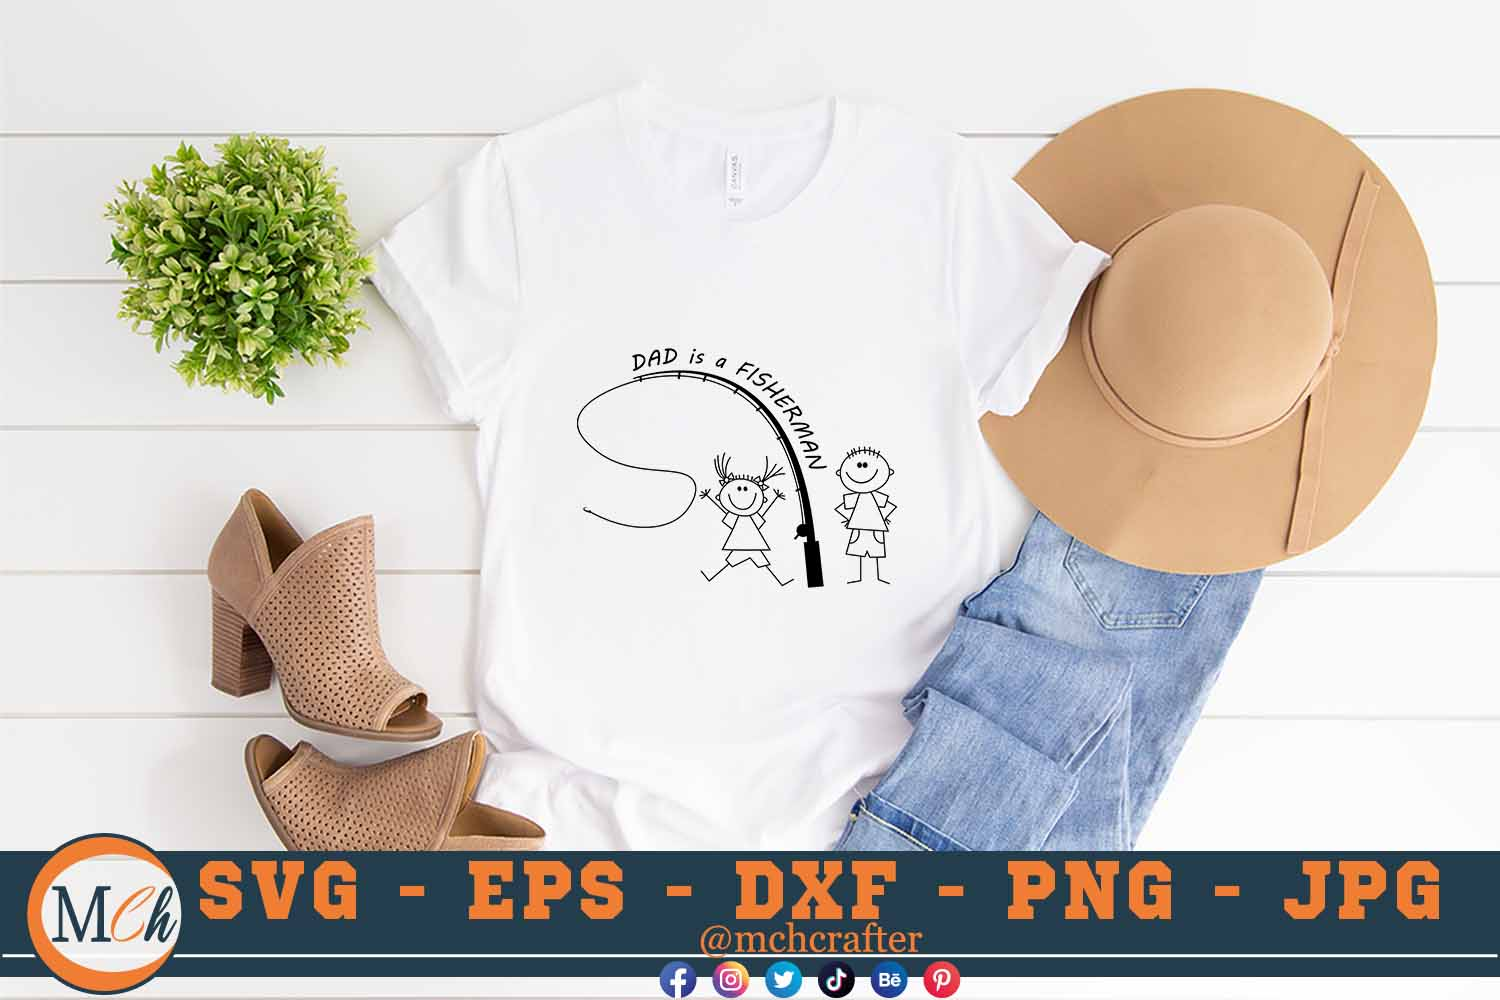 Download Dad Is A Fisherman Svg Brother And Sister Svg Family Goals Svg Fishing Svg Free Mch Crafter